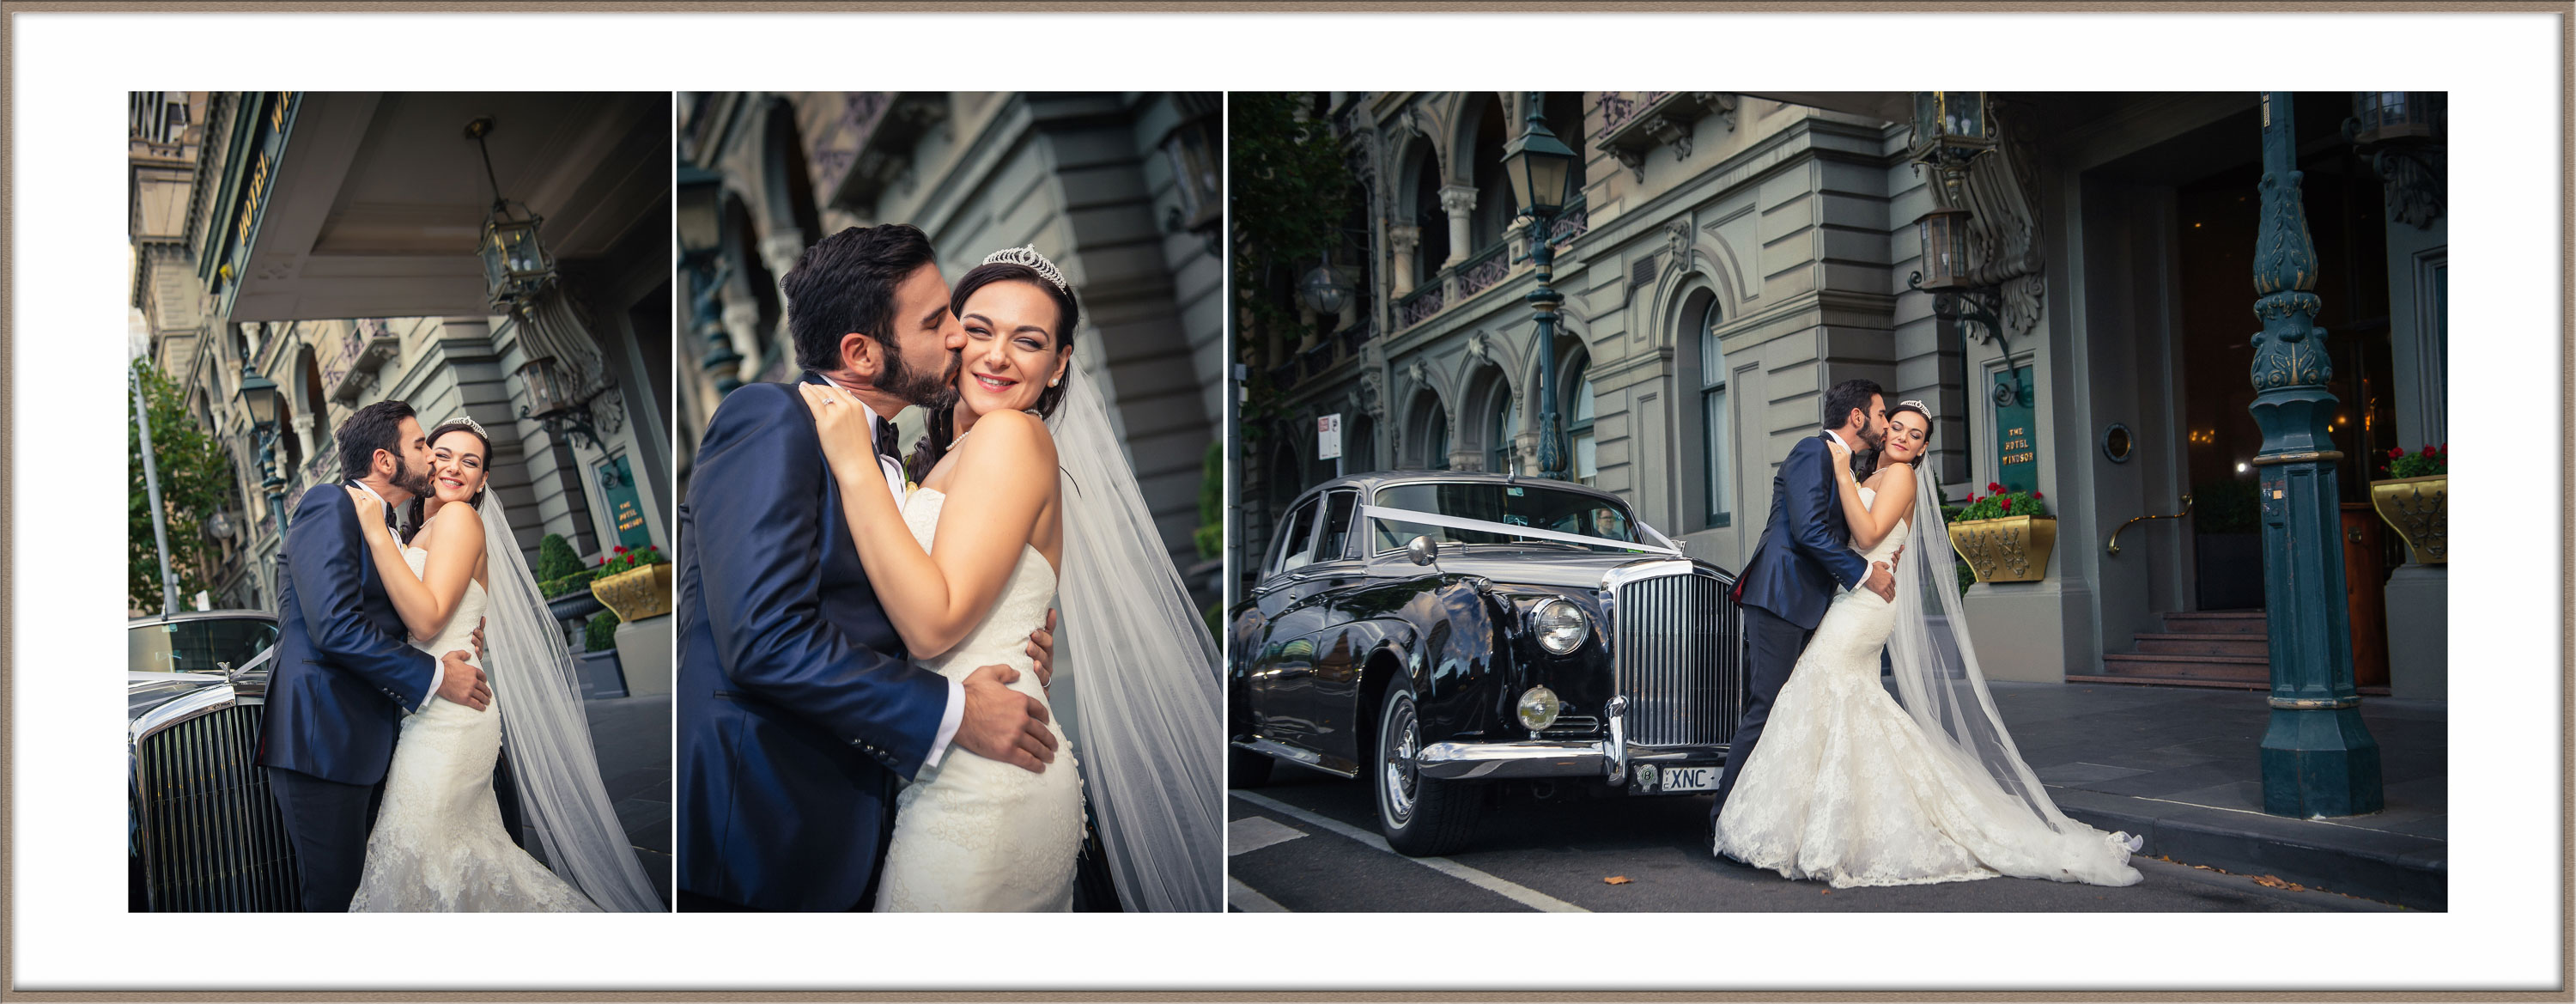 Moe_and_Margarert Firzory Garden Melbourne Wedding photography Blessed Vision (1 of 1)